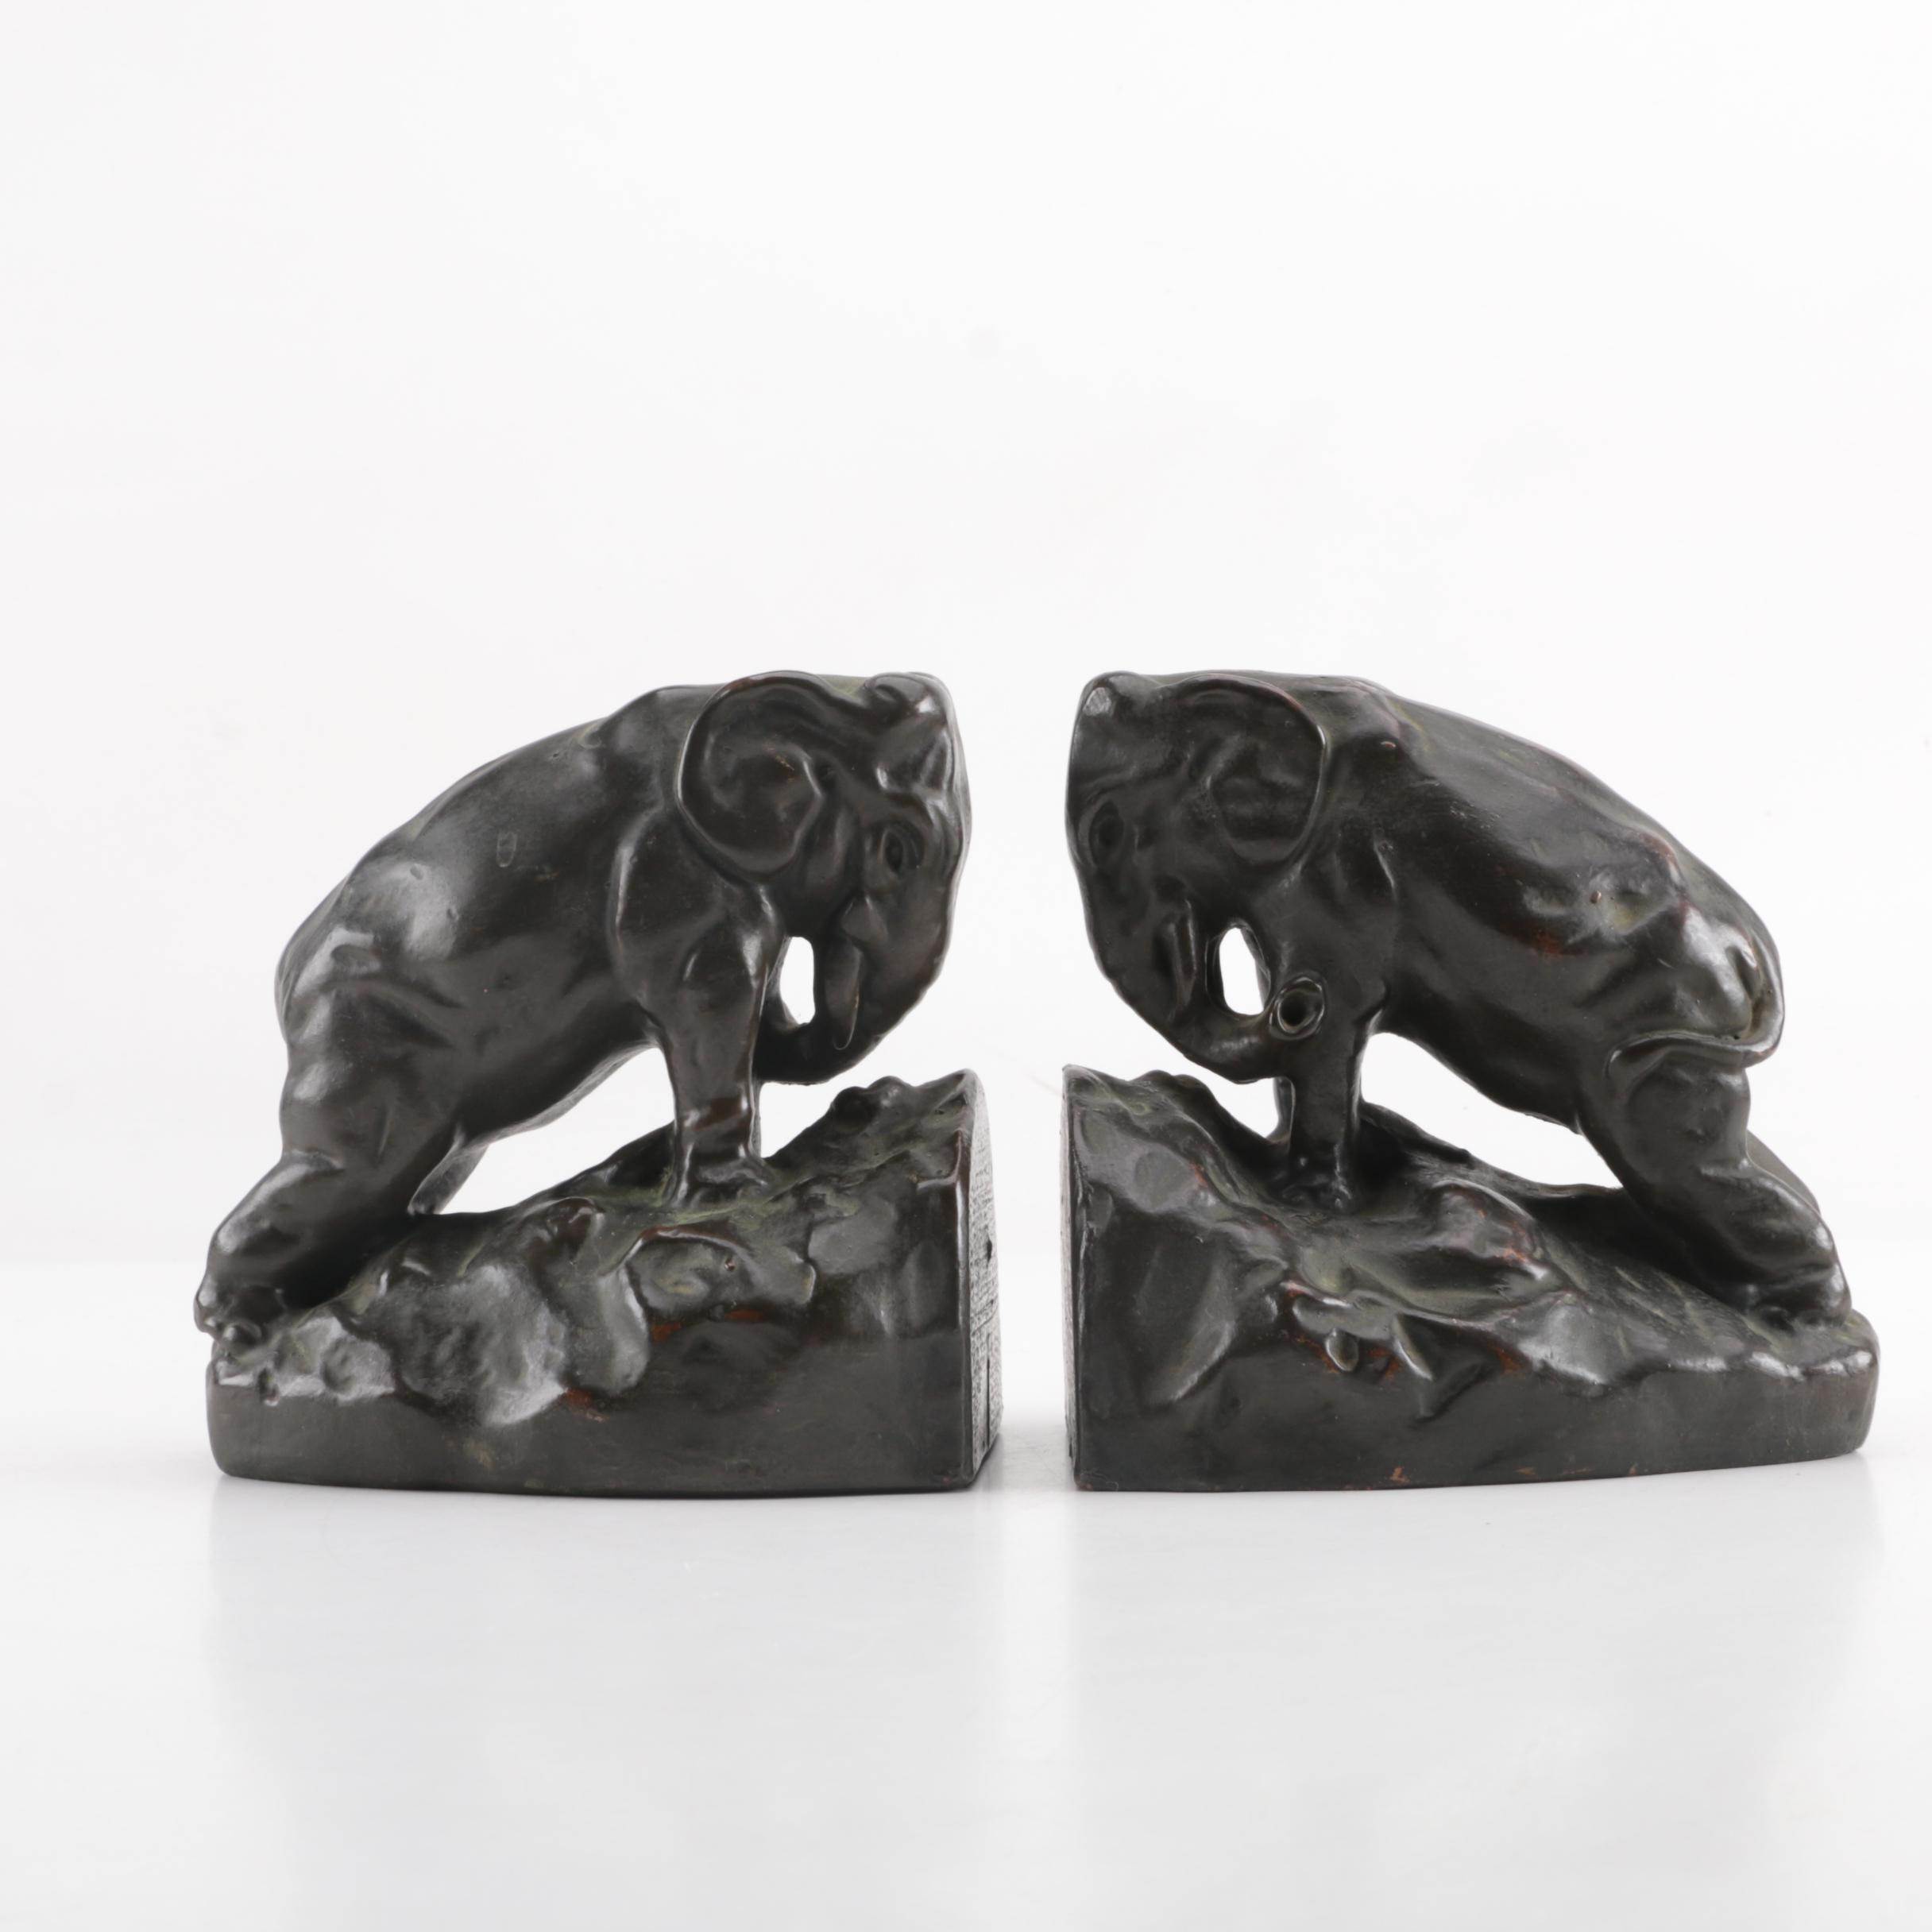 American Bronze Plated Cast Metal Elephant Bookends, Early 20th Century